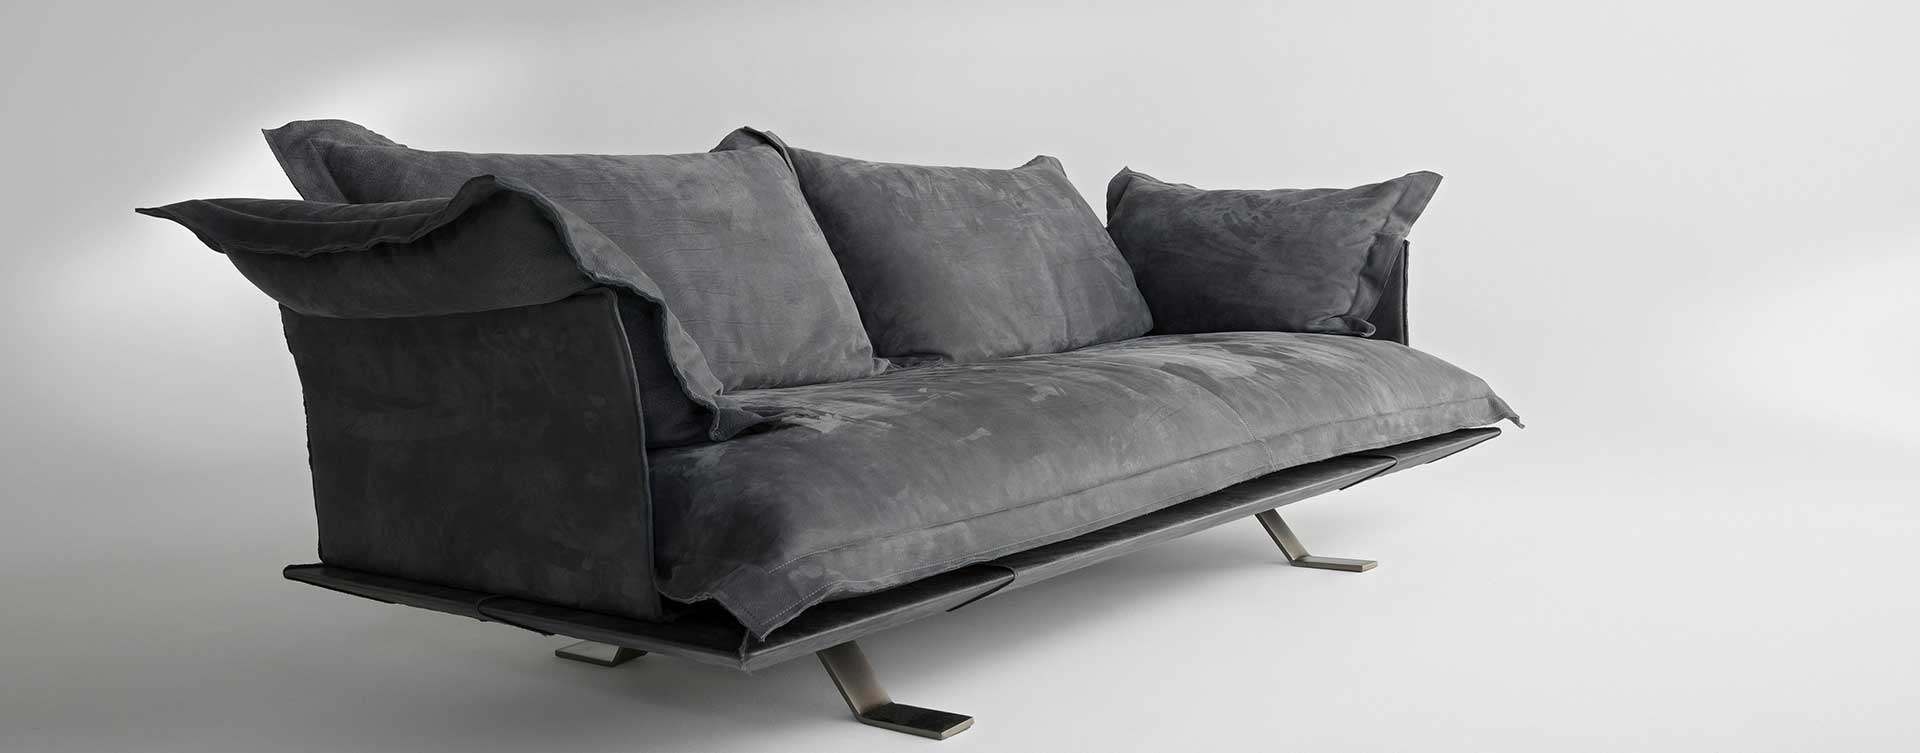 Albedo Italian Design Furniture - Sofa Model